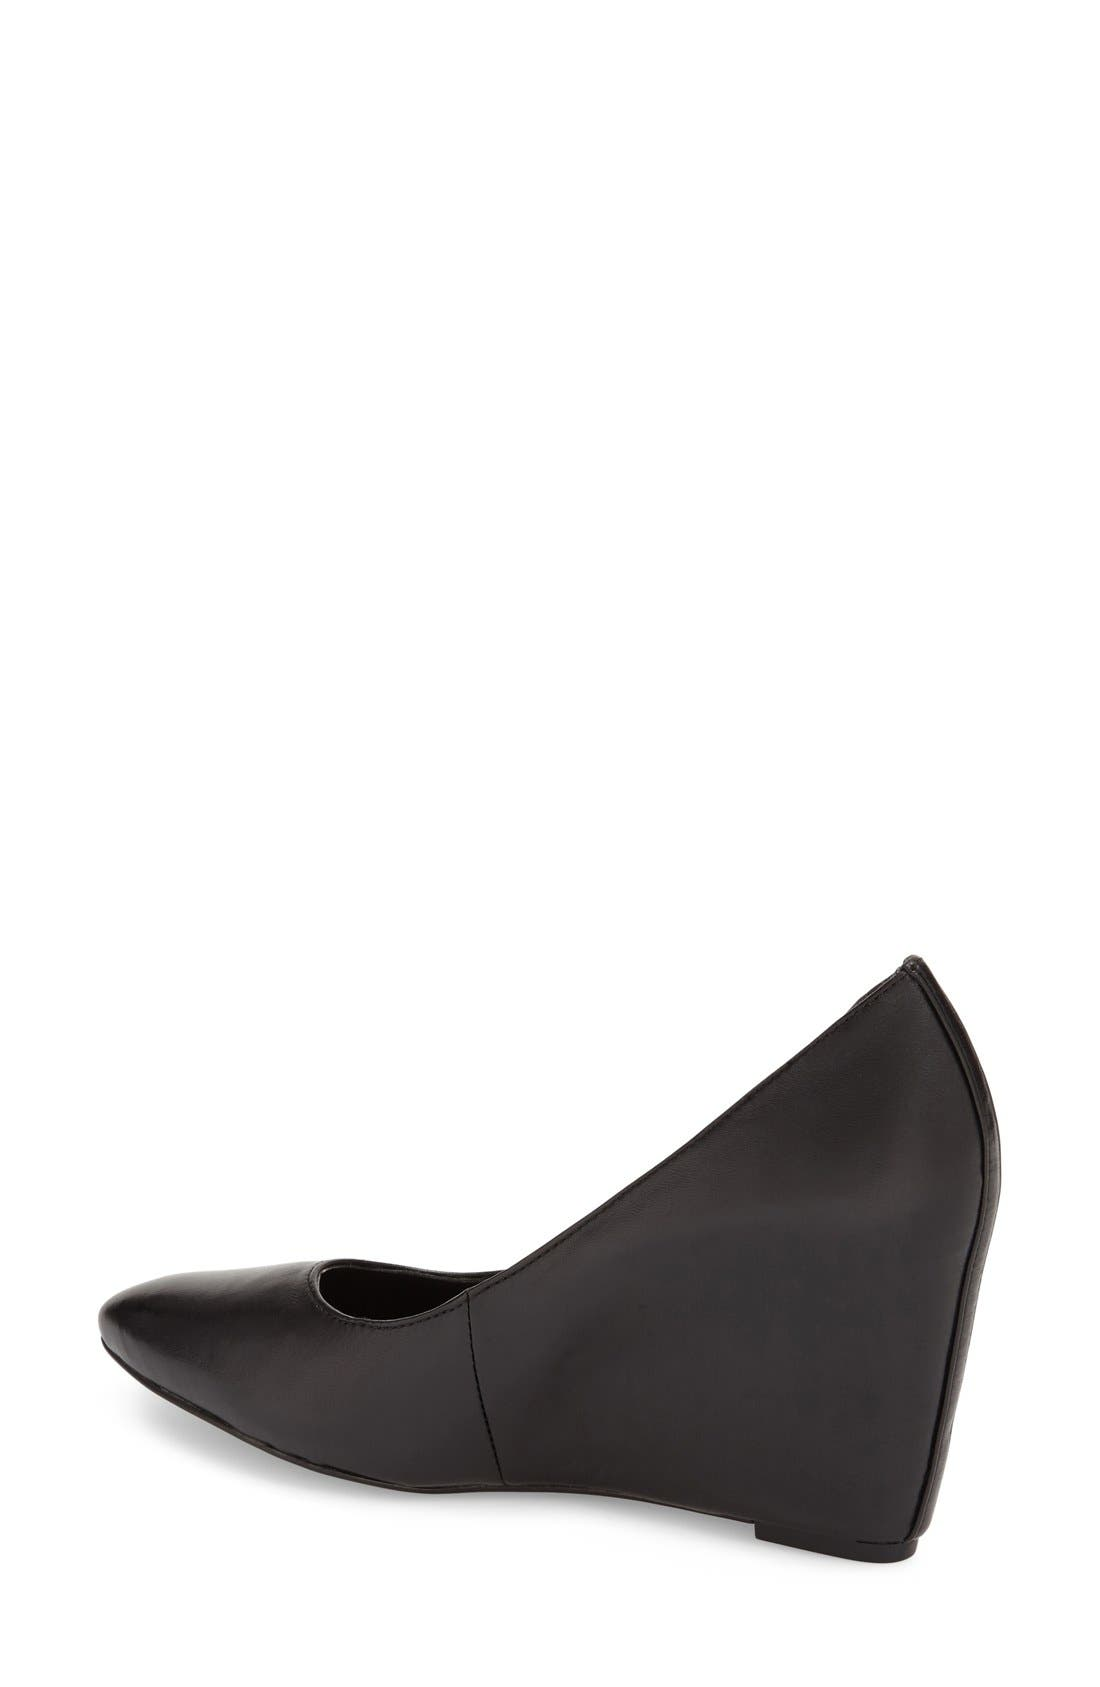 'Woodstock' Wedge Pump,                             Alternate thumbnail 2, color,                             Black Leather